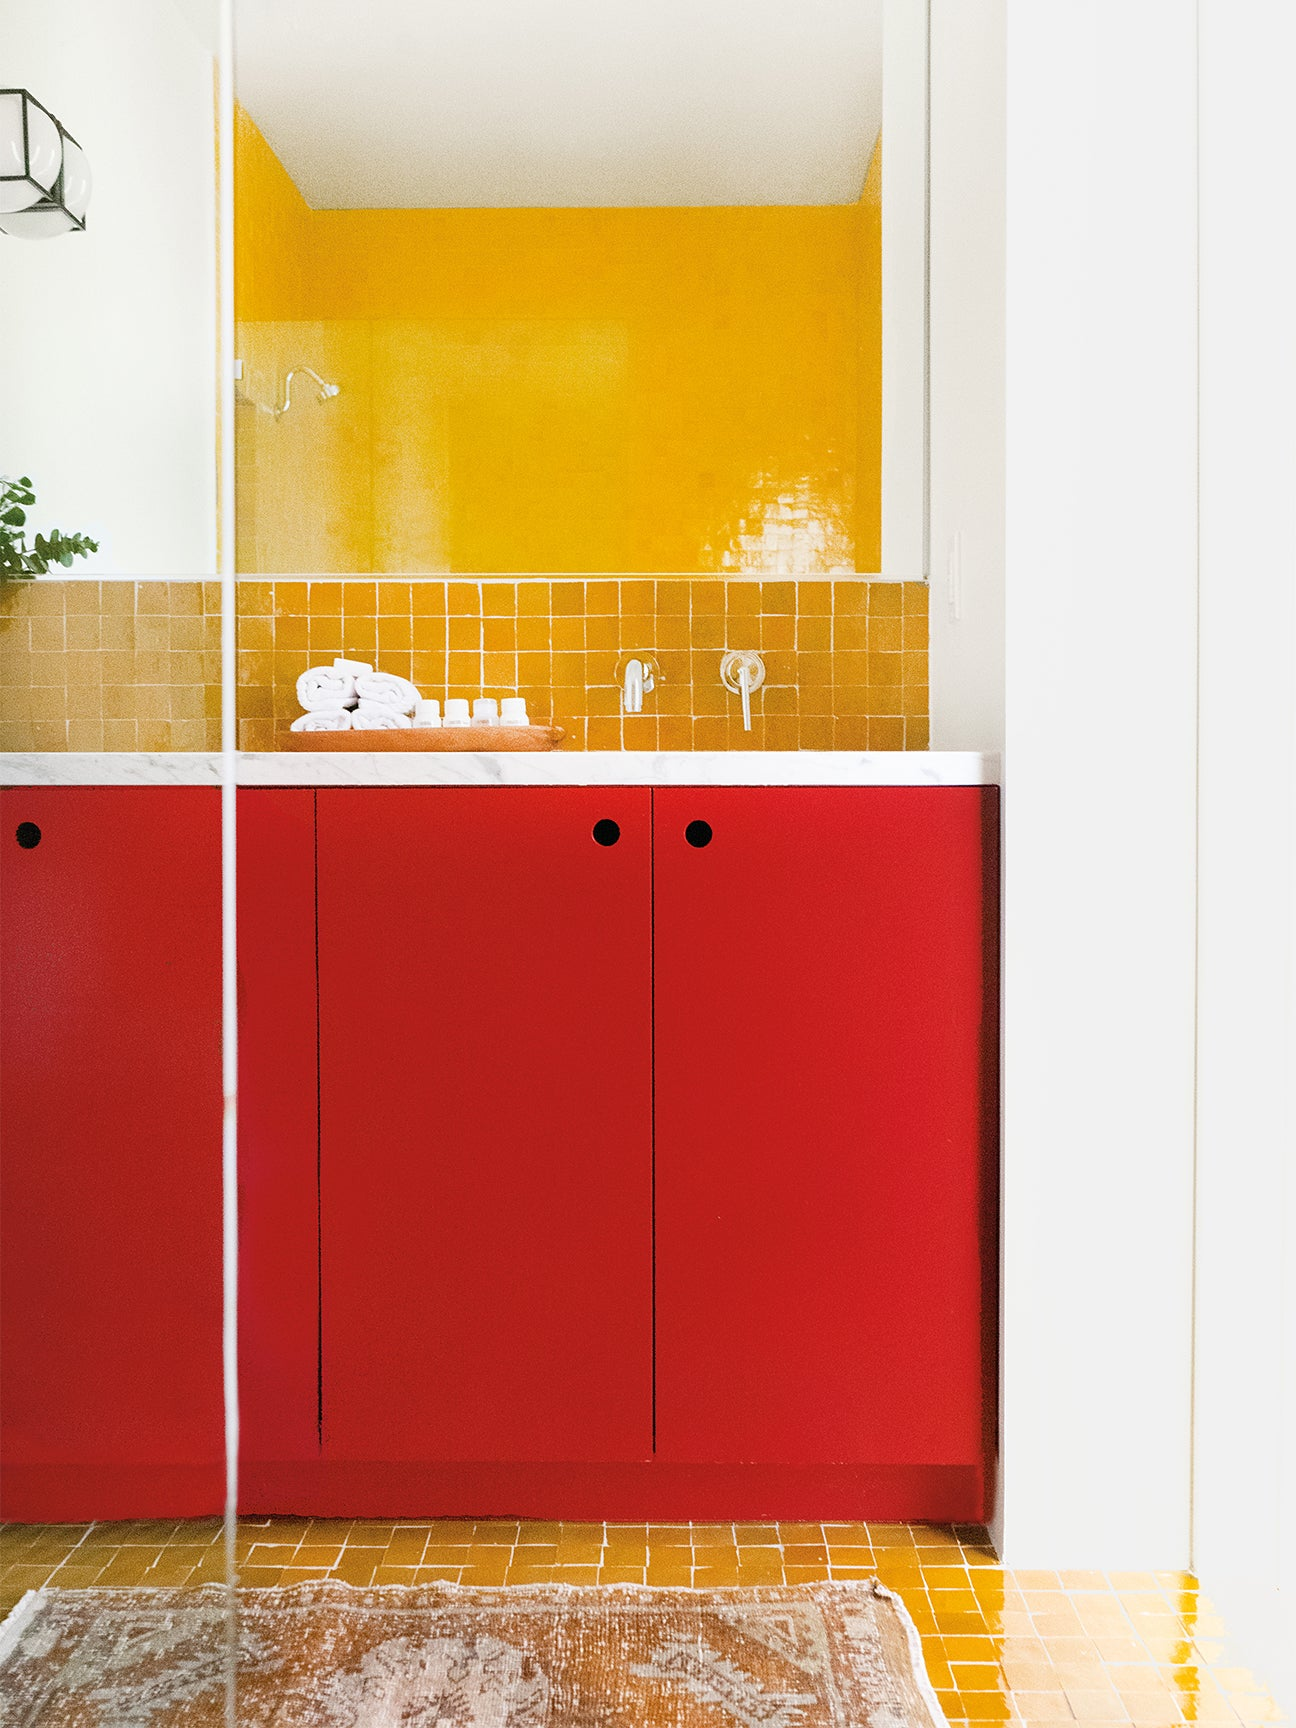 Bathroom with yellow tile and red vanity